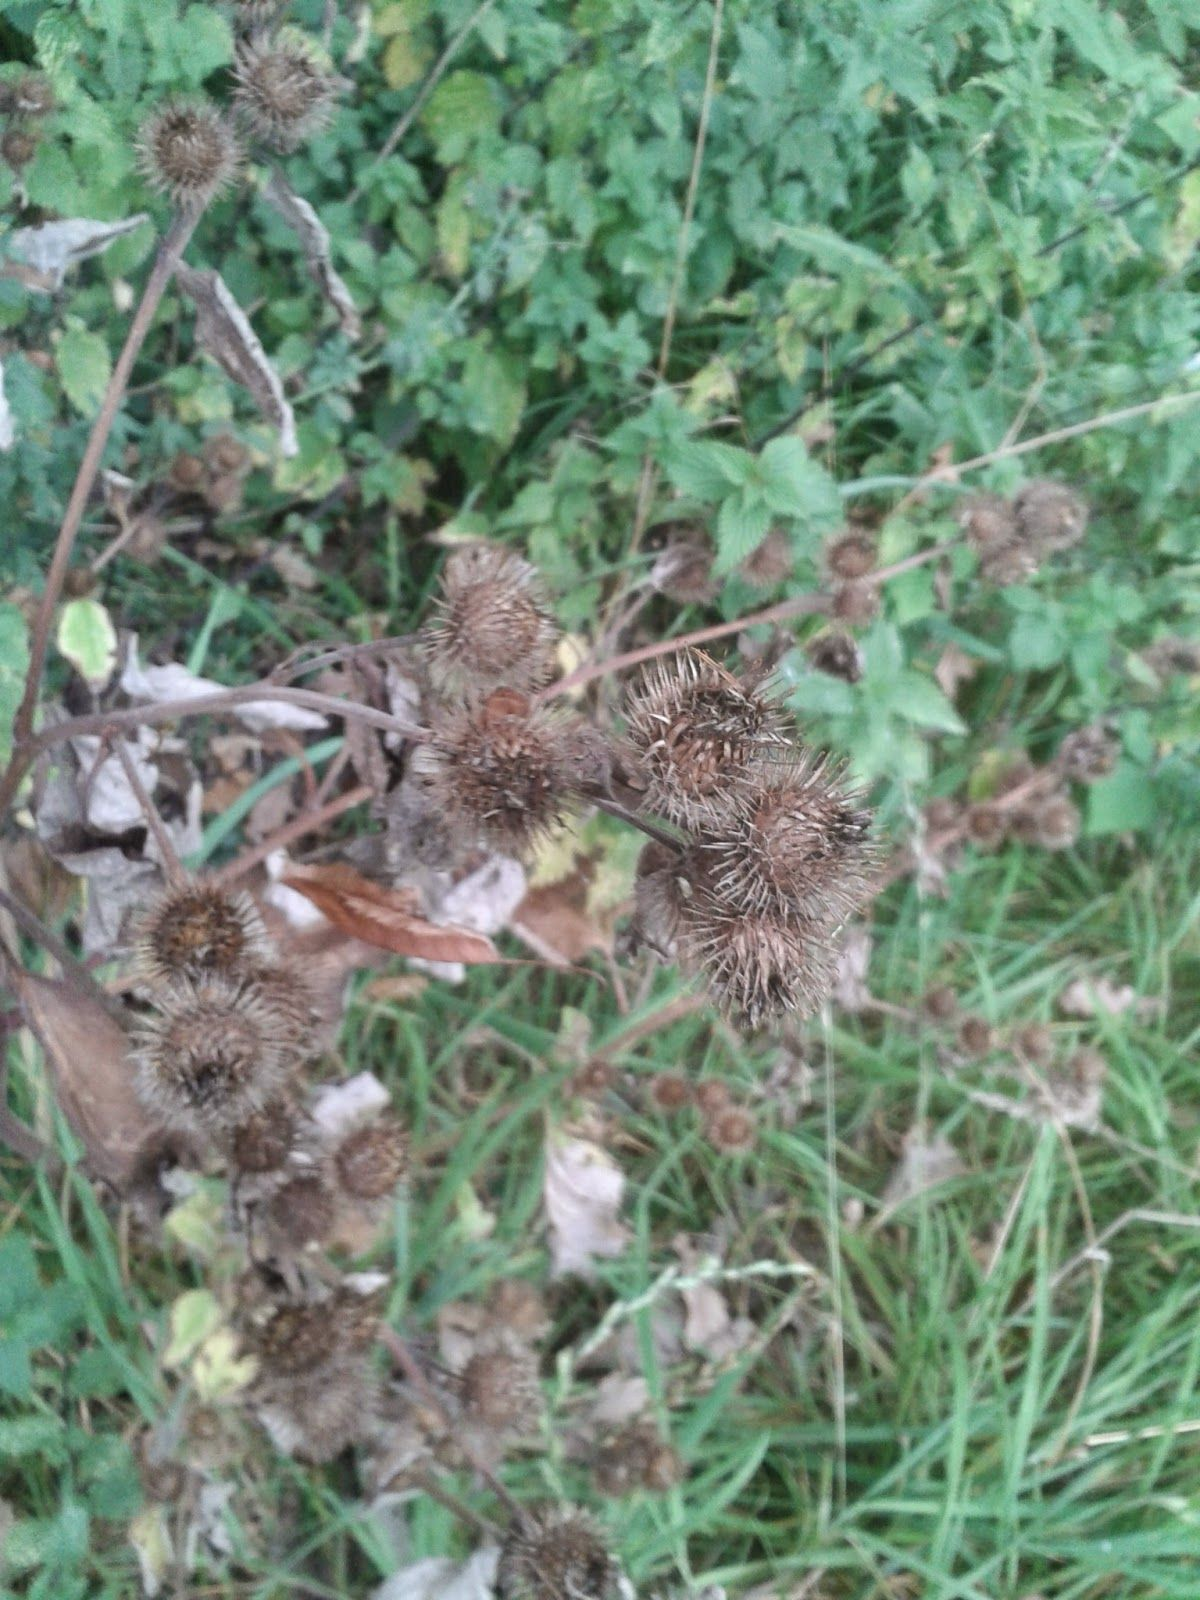 Edible Root No. 1 Burdock